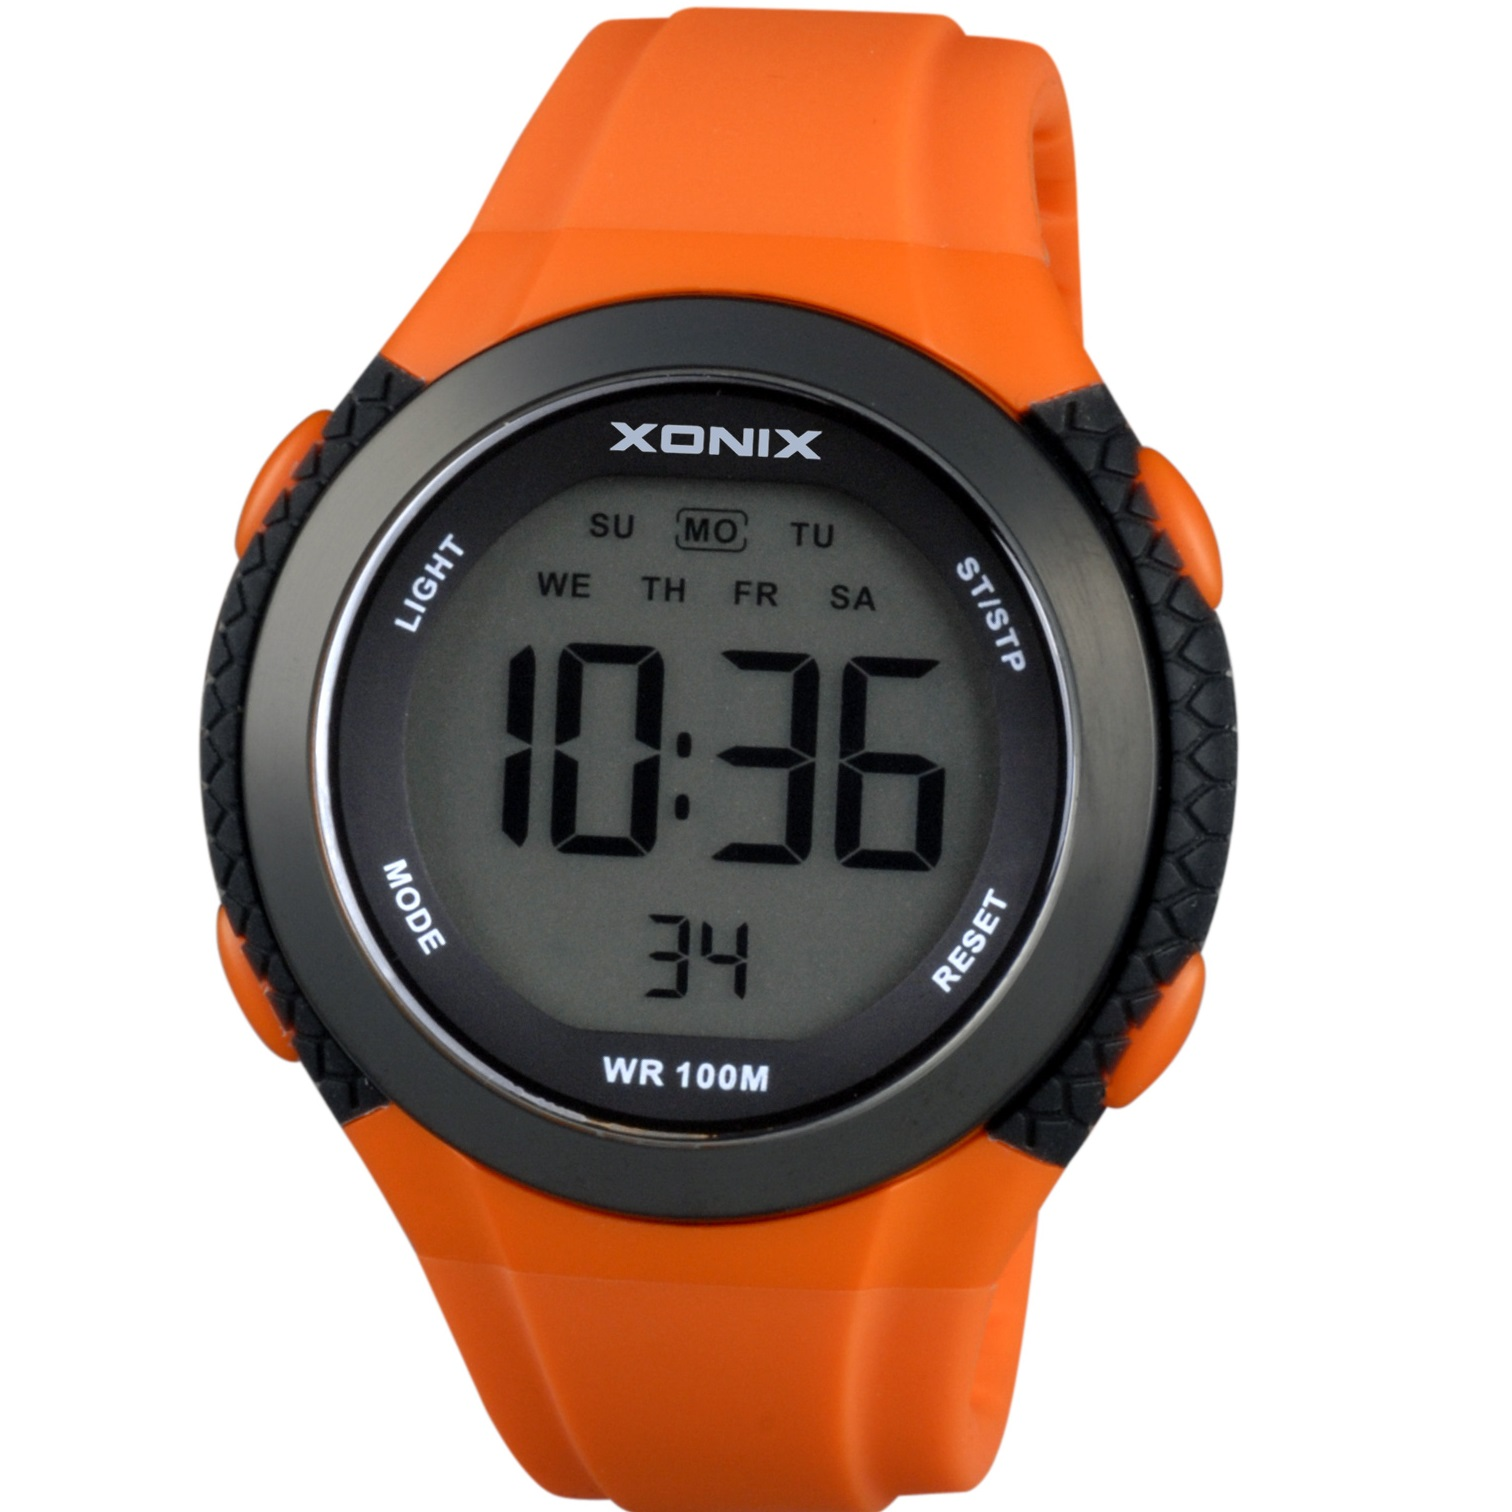 Xonix Chronograph Orange Silicone Strap JC-101